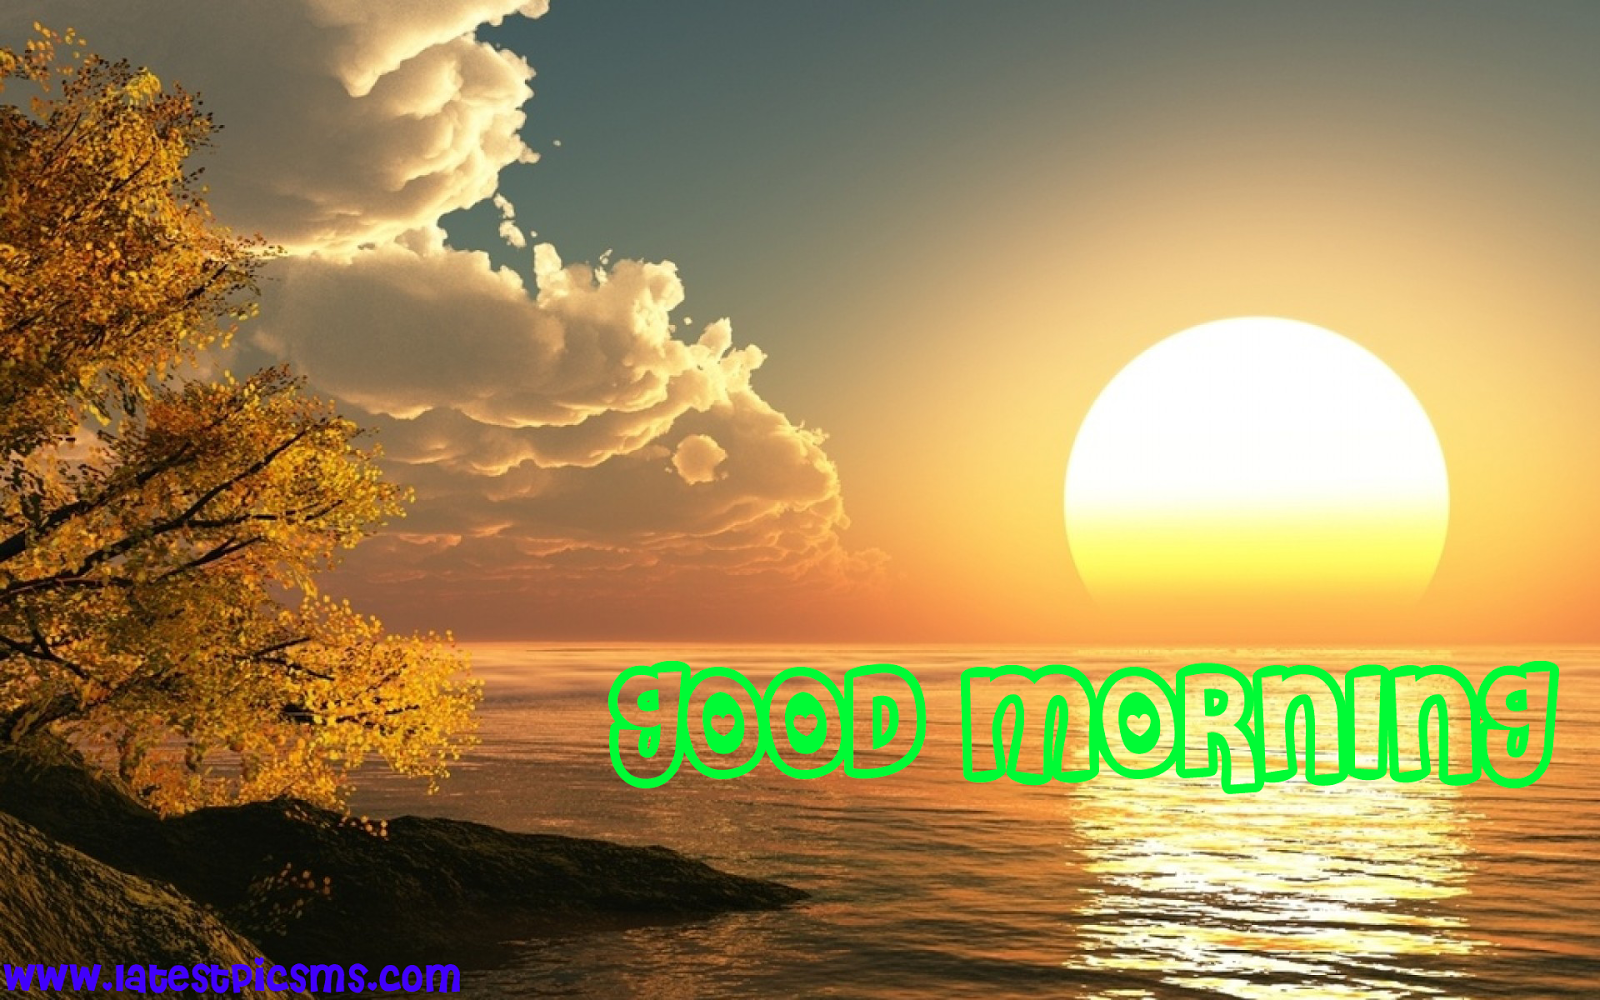 FRESH%2BGOOD%2BMORNING%2BWITH%2BSUNSHINE%2BBEAUTIFUL%2BRIVER%2BSHADOW - A Lovely and Fresh Good Morning HD Picture Messages for Whatsapp & Fb